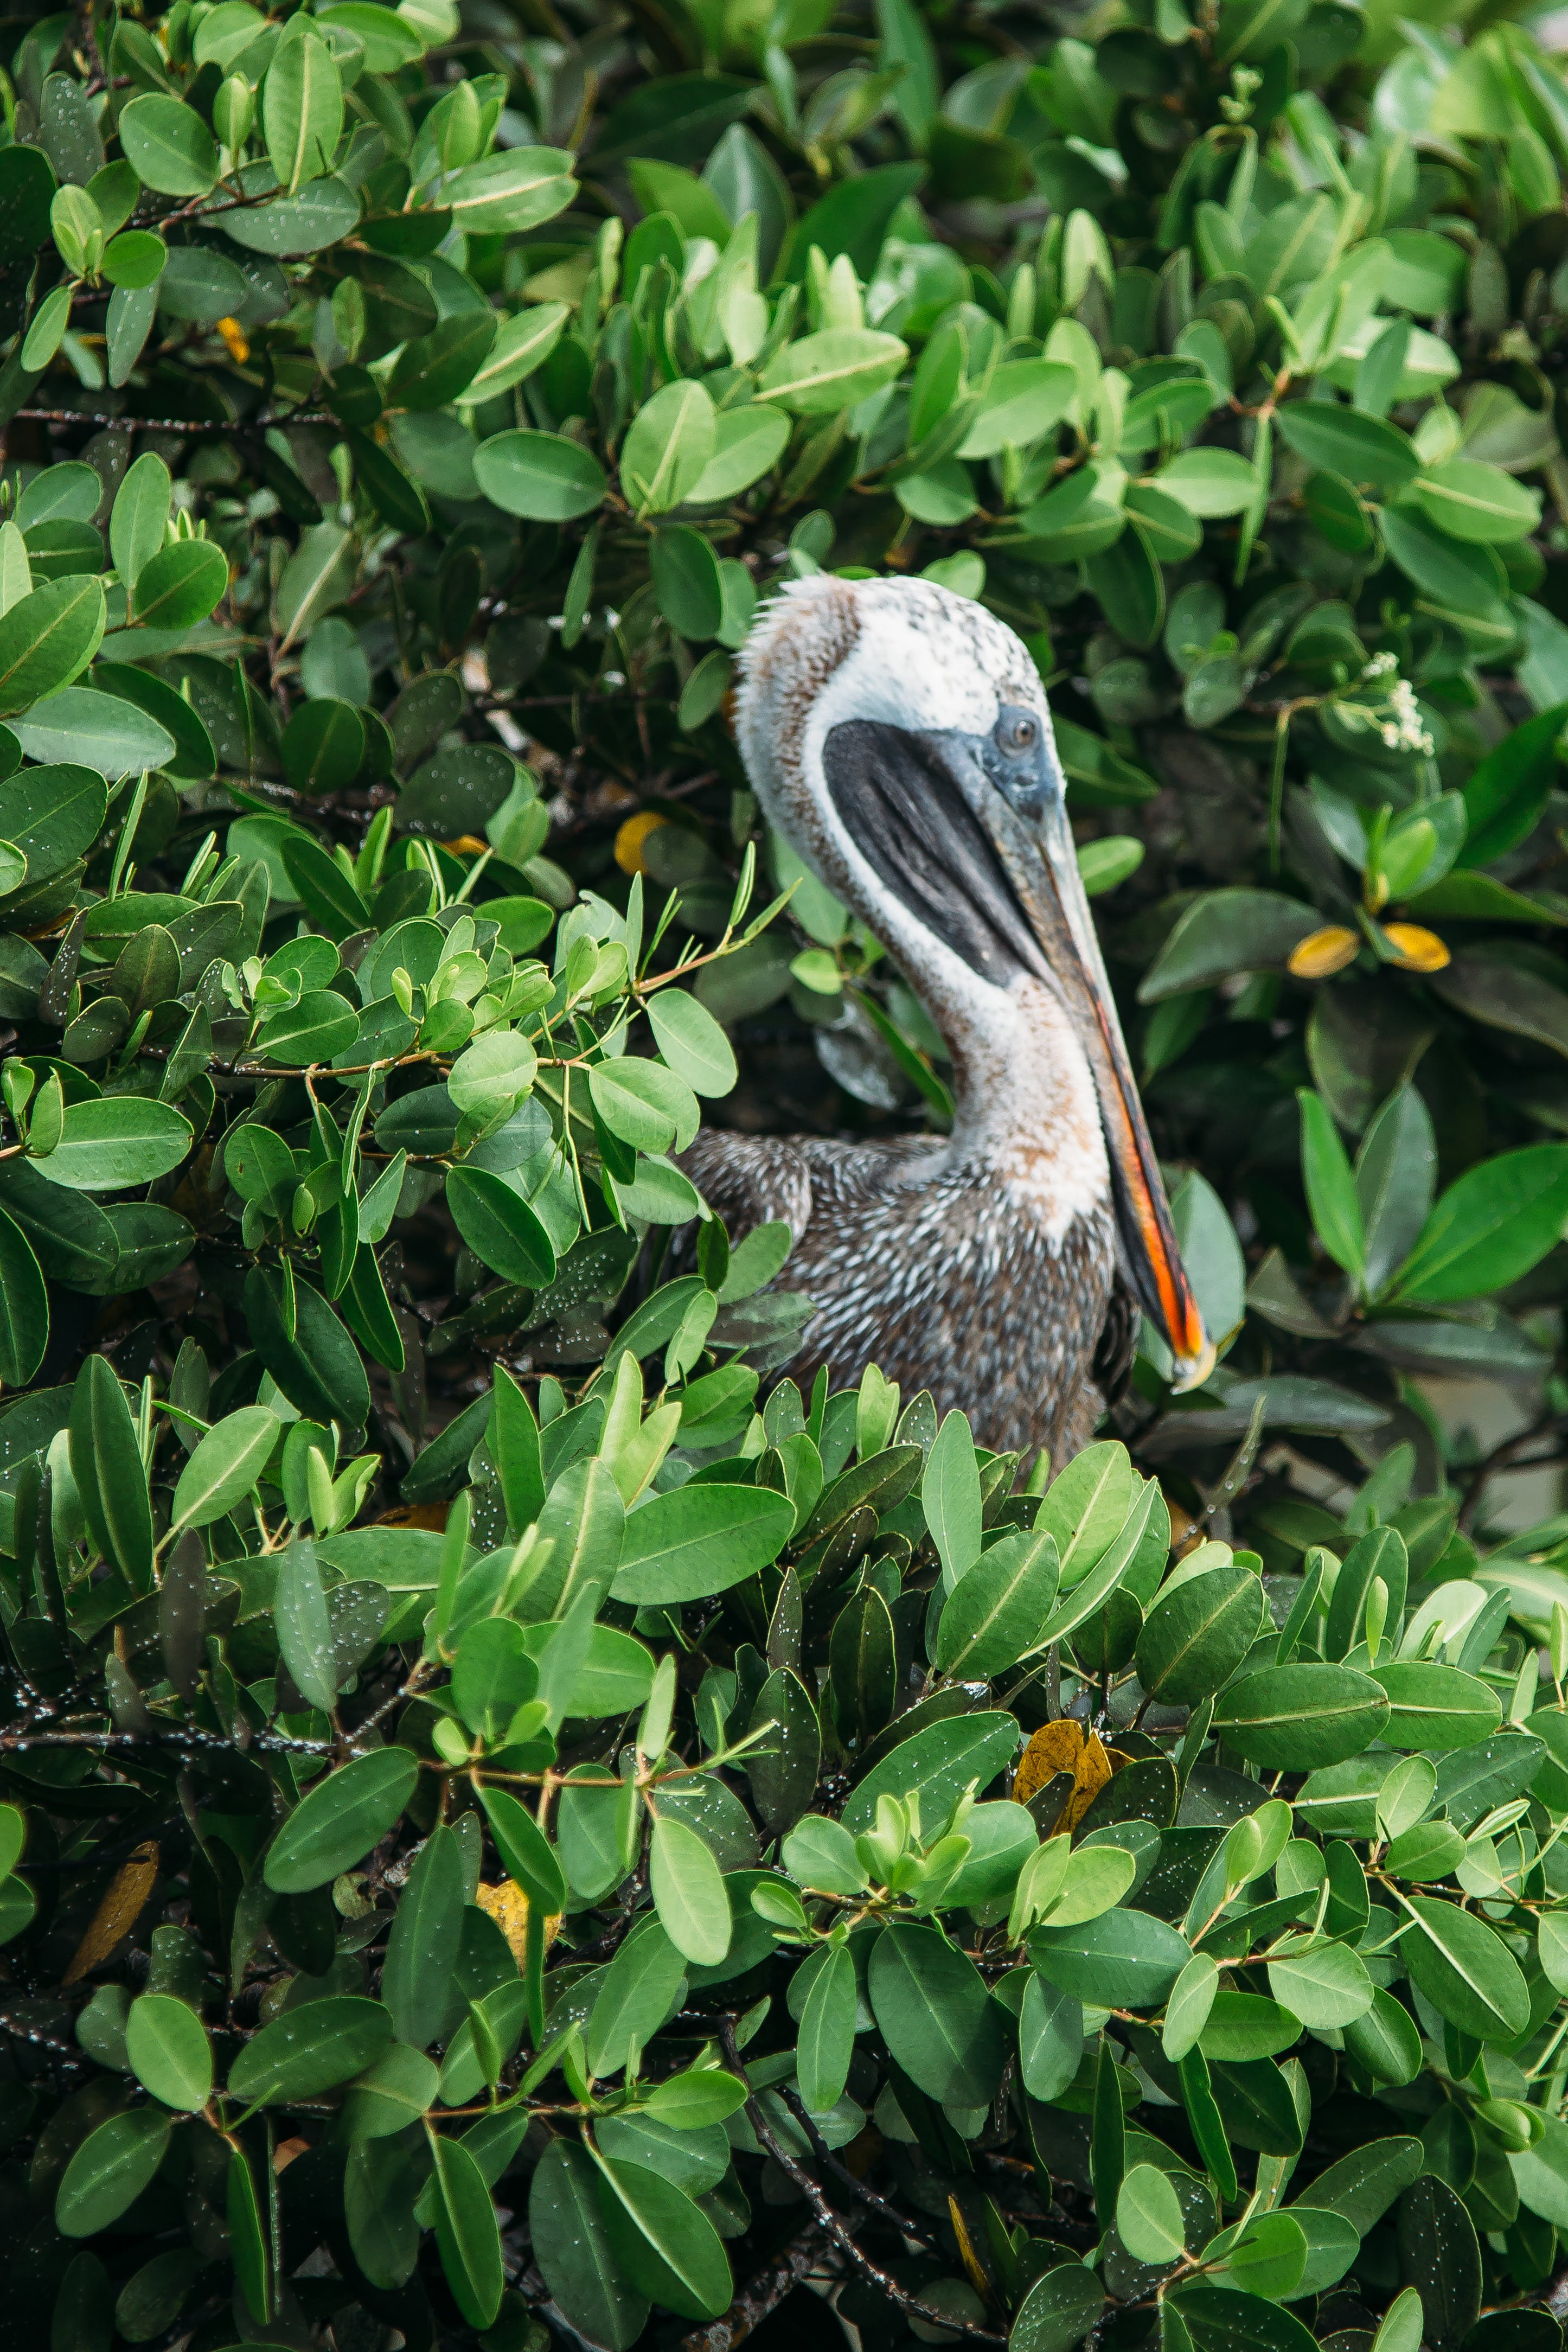 White Pelican Beside Plant